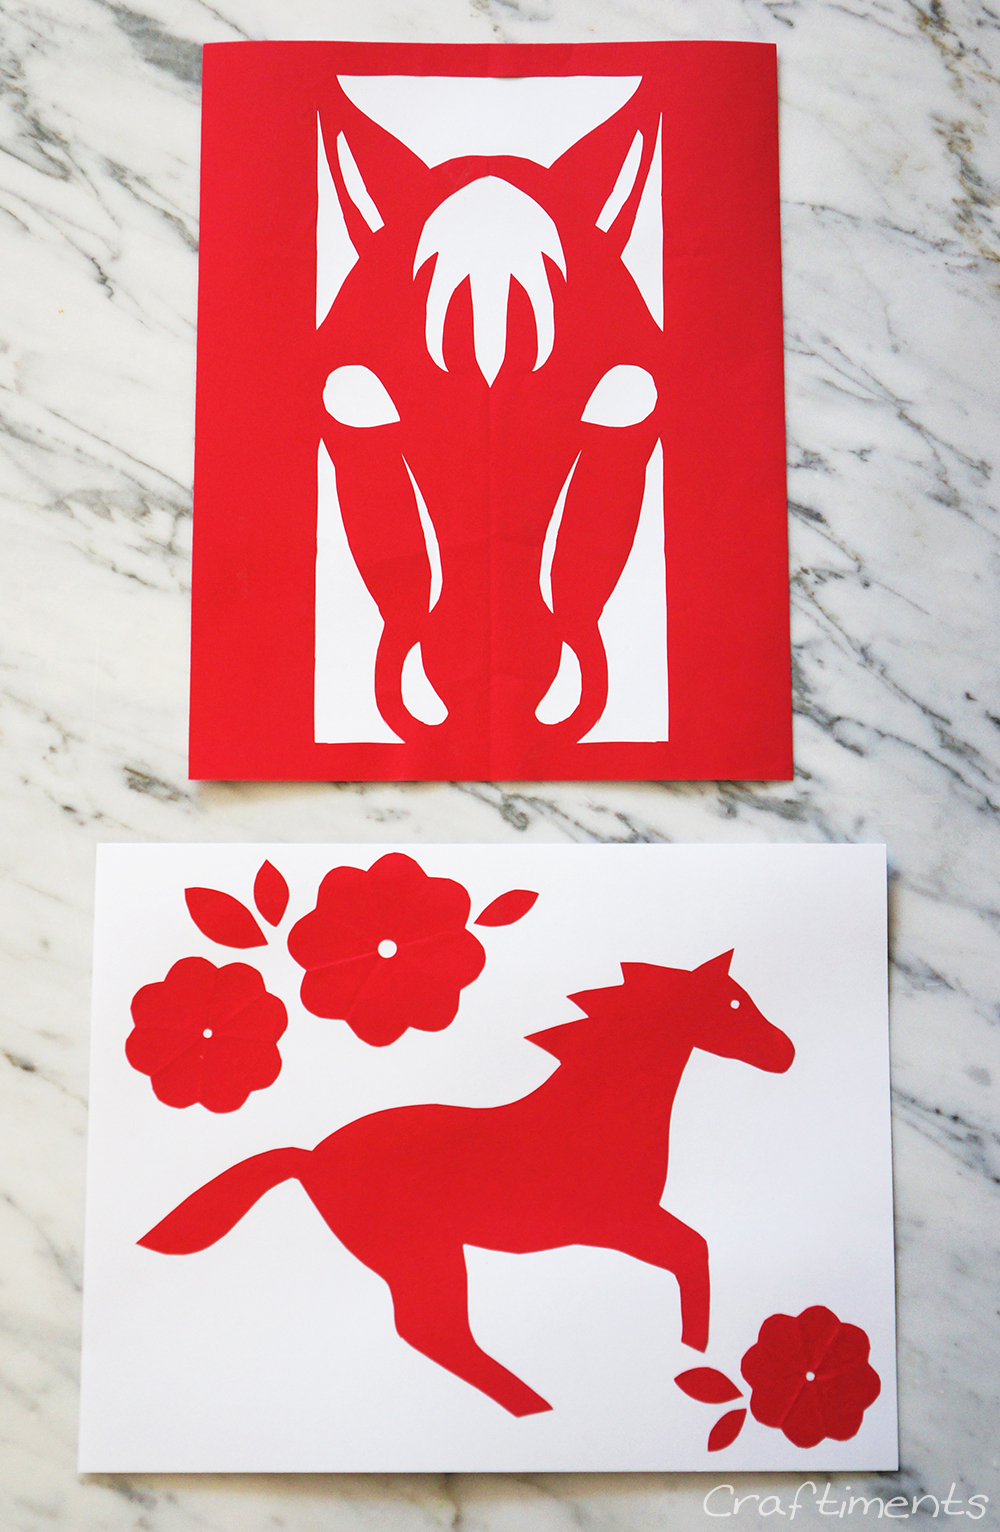 Craftiments Chinese New Year Paper Cutting Craft For Kids Includes Free Printable Patterns